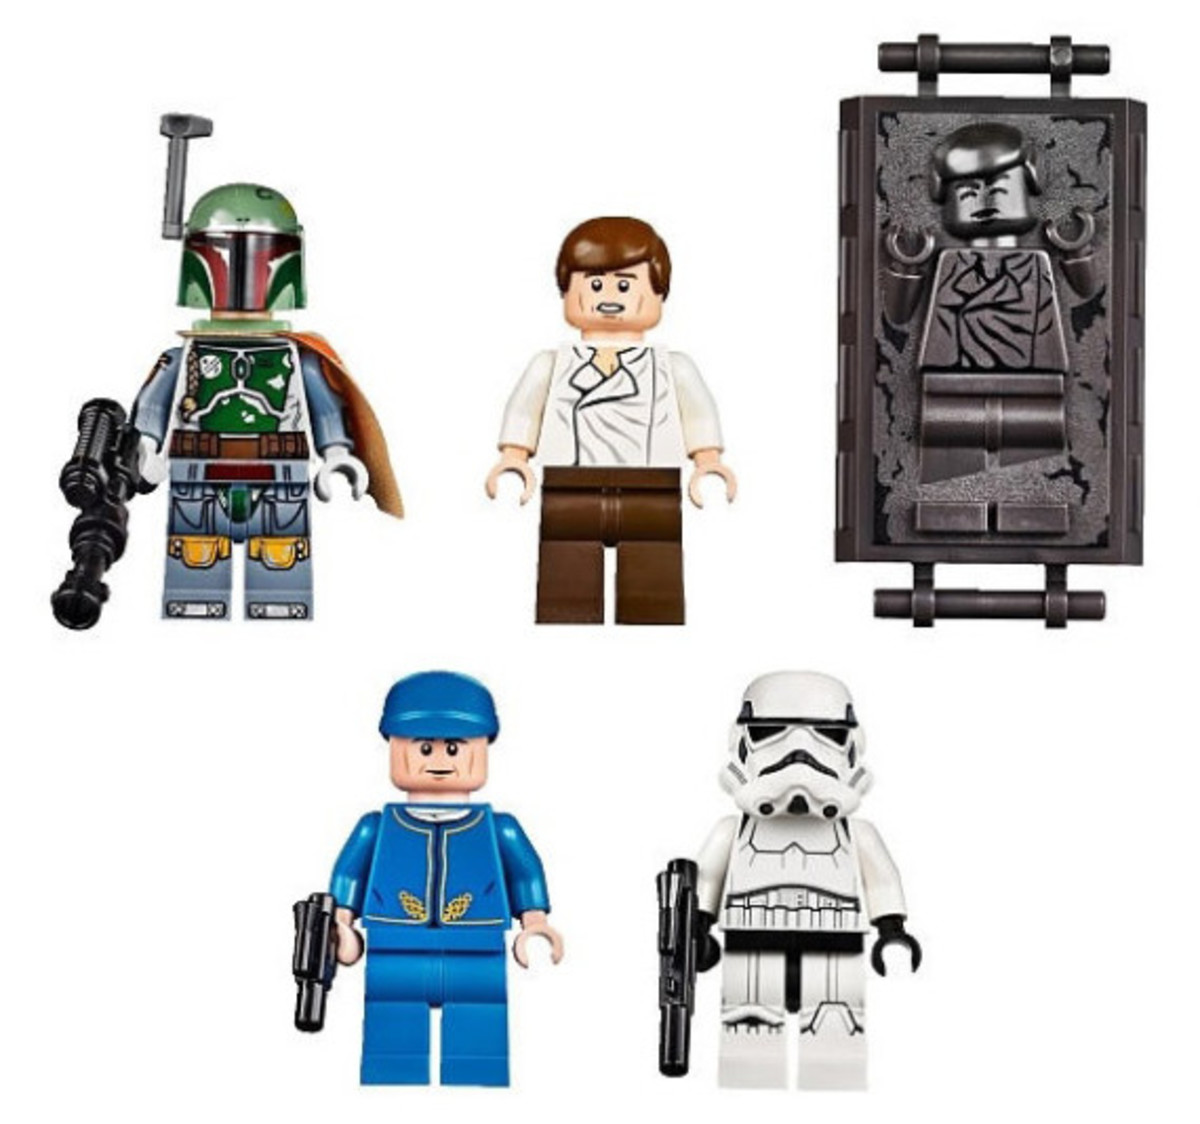 Star Wars x LEGO Ultimate Collector's Series: Boba Fett's Slave I Kit   Release Info - 27